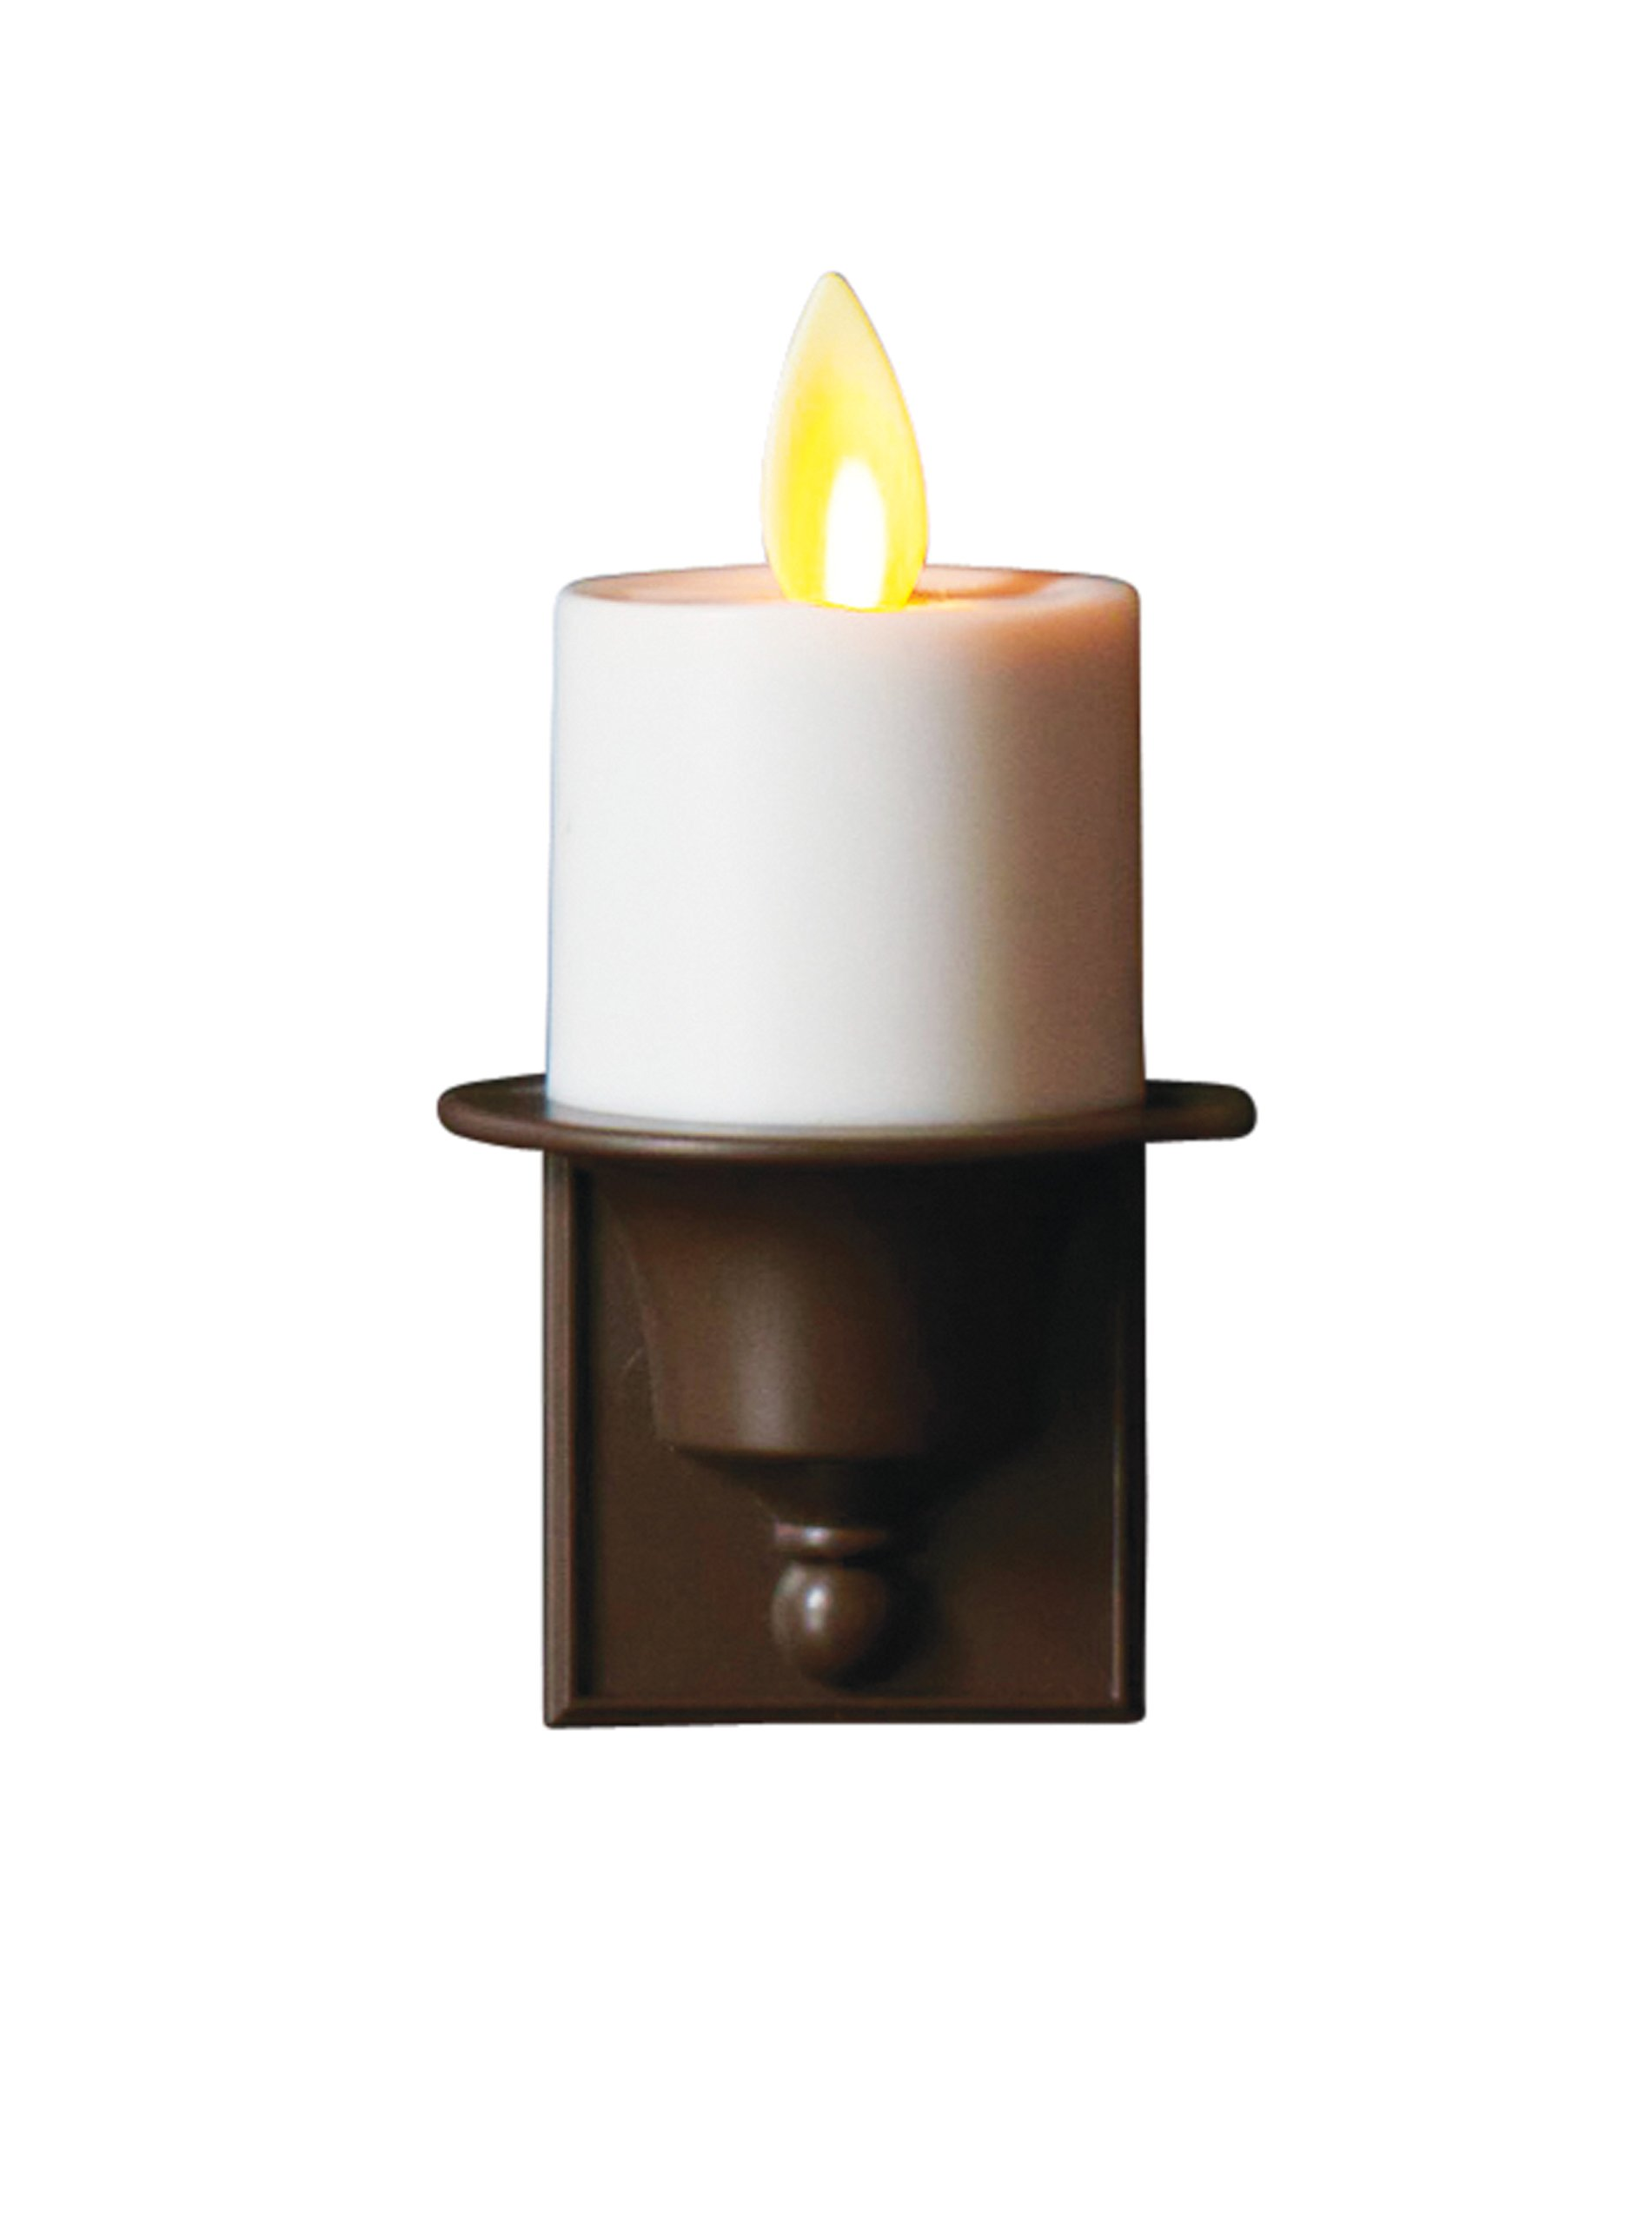 Mystique Flameless Candle, Ivory Nightlight, Plastic Candle With Realistic Flickering Wick, By Boston Warehouse